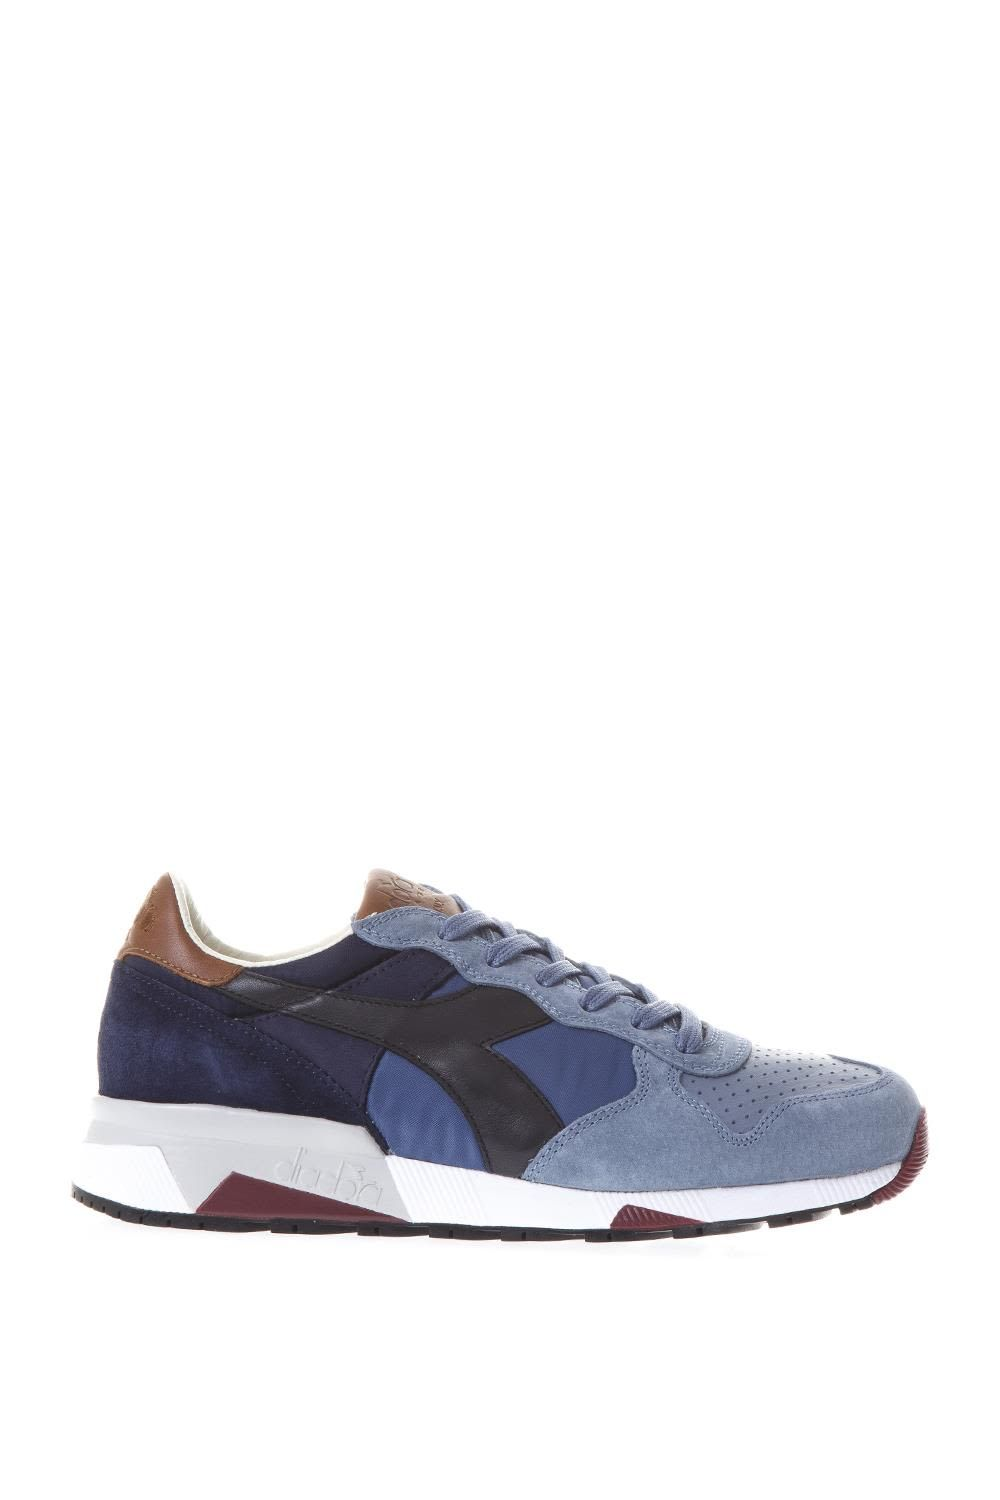 Clearance Free Shipping Quality Free Shipping For Sale TRIDENT 90 LODEN - FOOTWEAR - Low-tops & sneakers Diadora Best Prices For Sale Geniue Stockist Cheap Online g3GeJIgfz